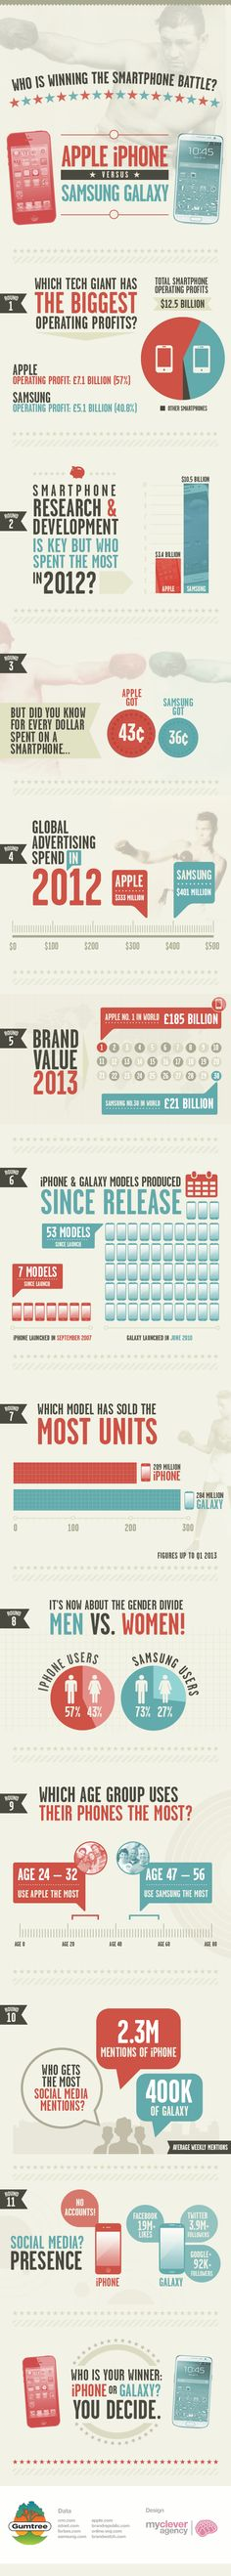 The two biggest technology giants Apple and Samsung have been fighting for years, but who's winning the smartphone battle? In our latest infographic we've Mobile Marketing, Online Marketing, Iphone Vs Samsung, Samsung Galaxy, Digital Customer Journey, Apple Iphone, Apps, Information Graphics, Digital Trends